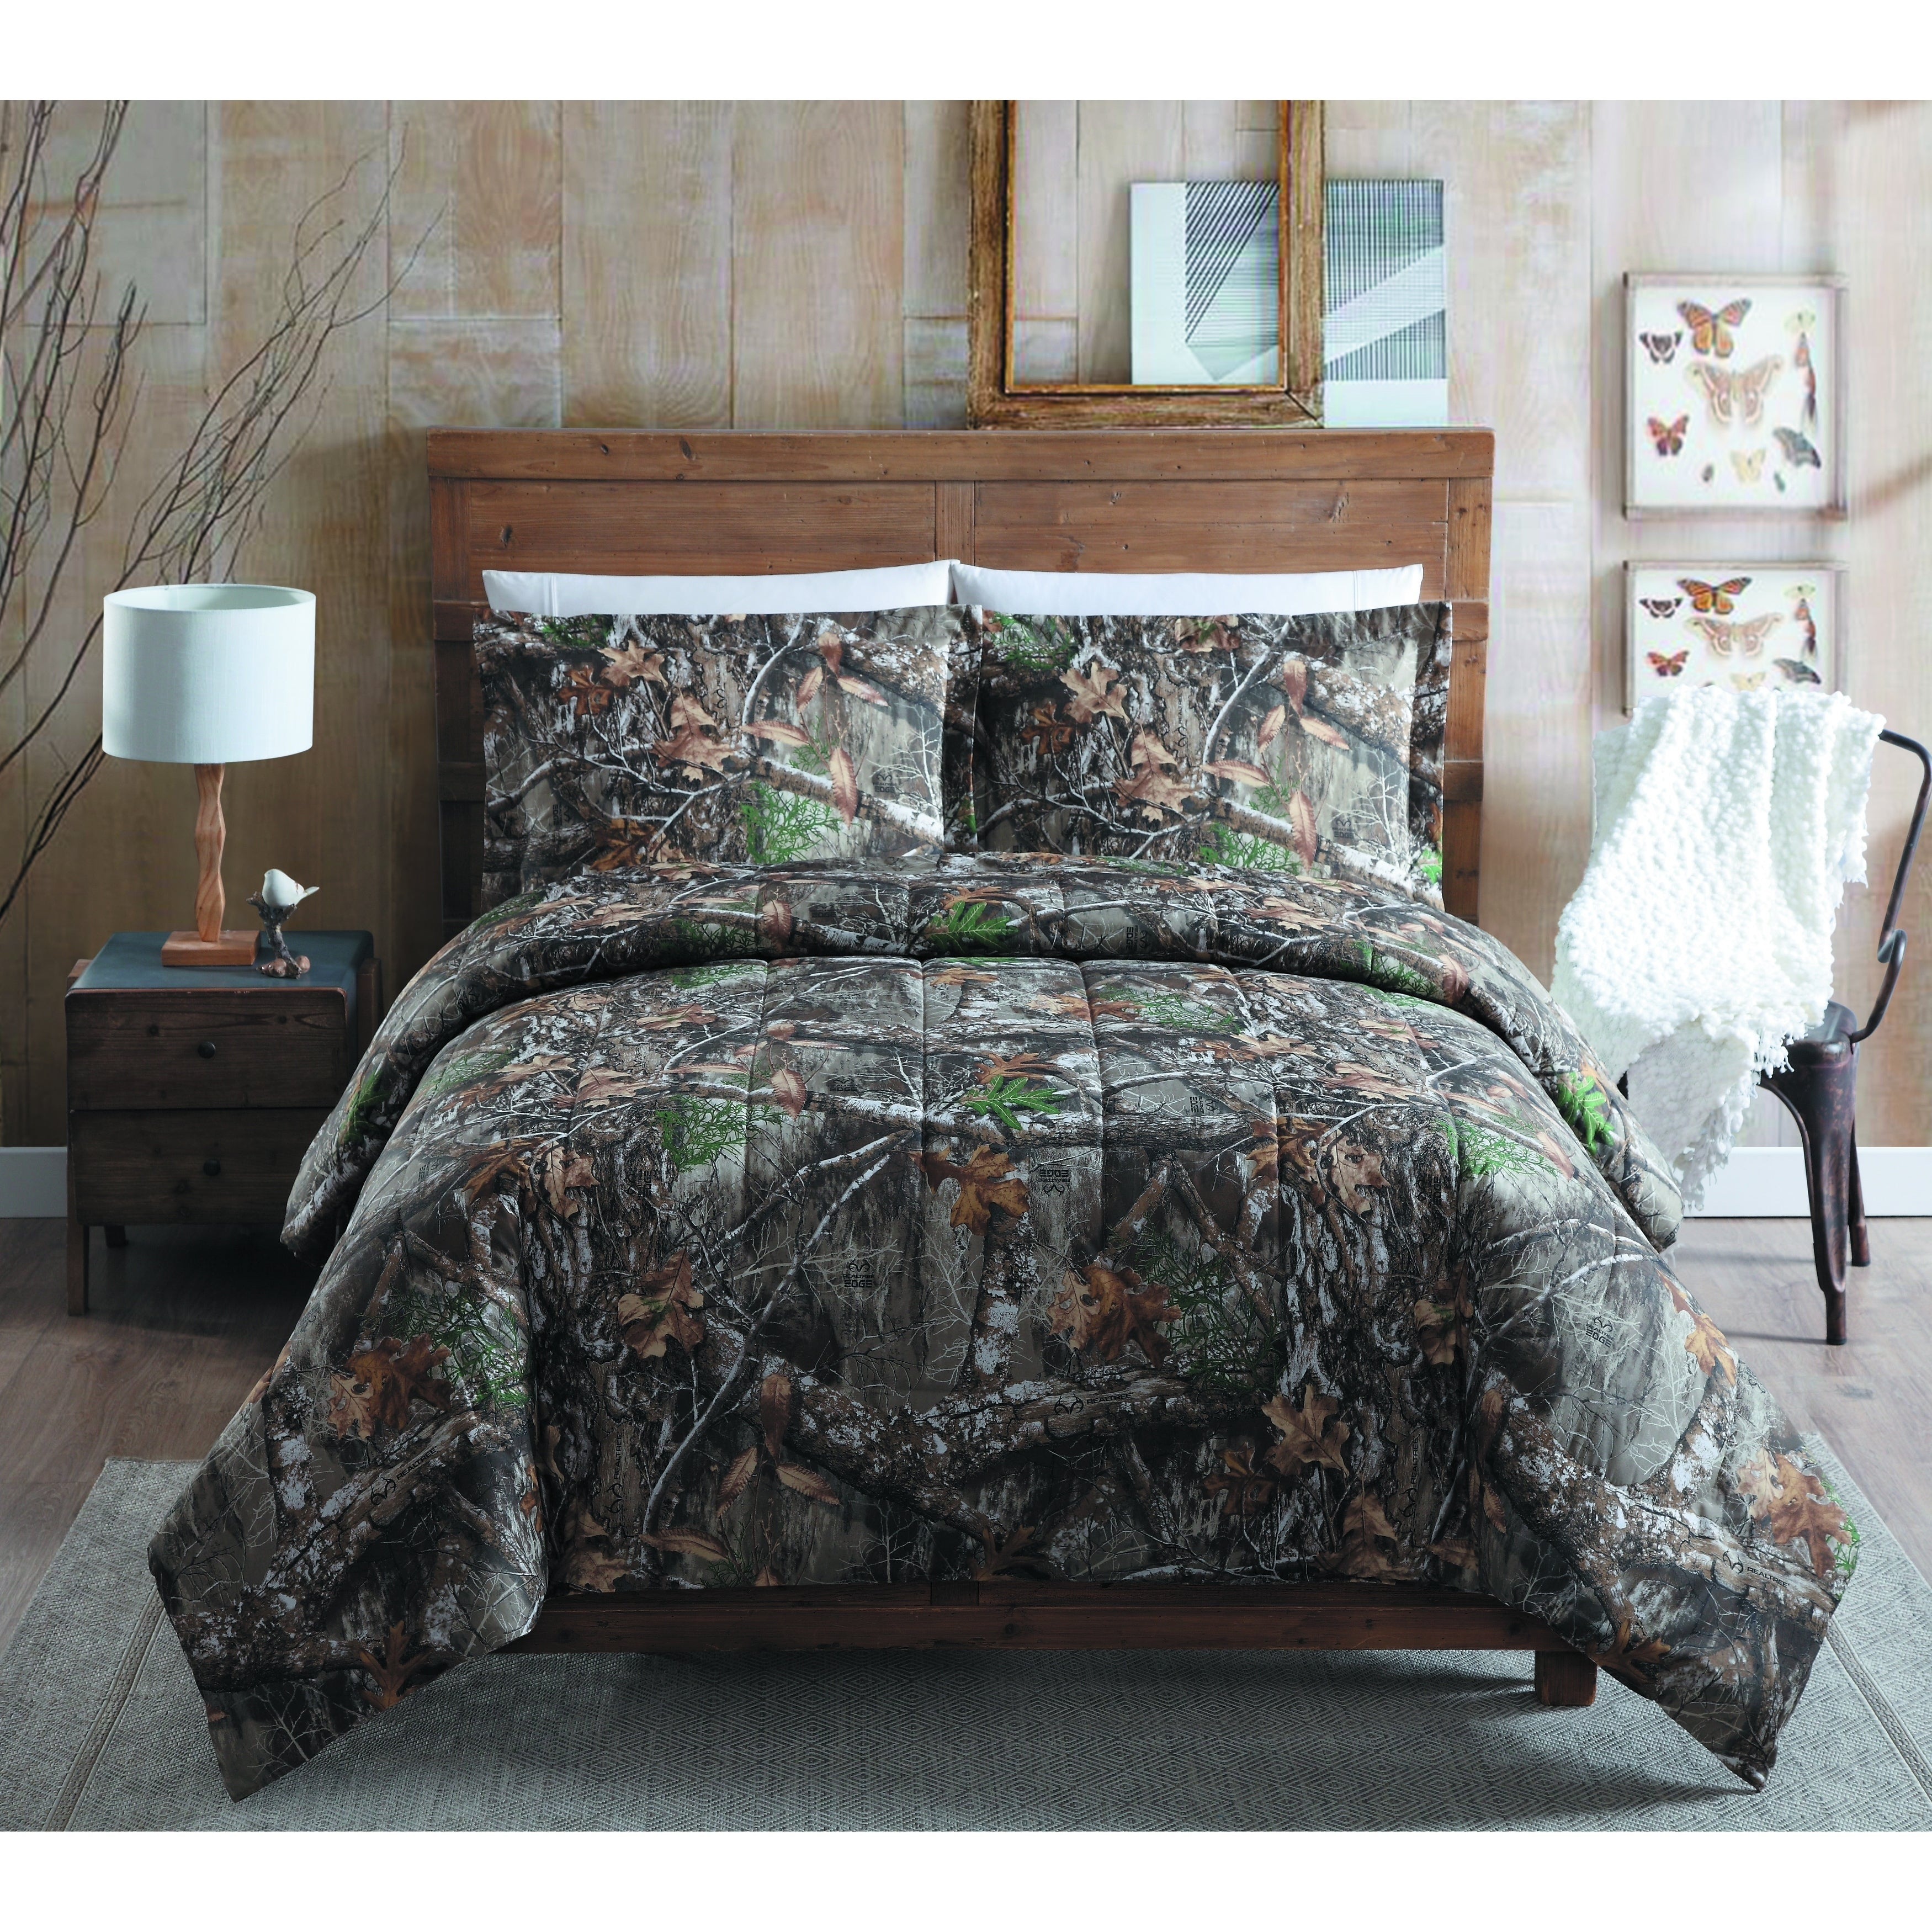 Realtree Edge Queen Comforter Set Overstock 21791934